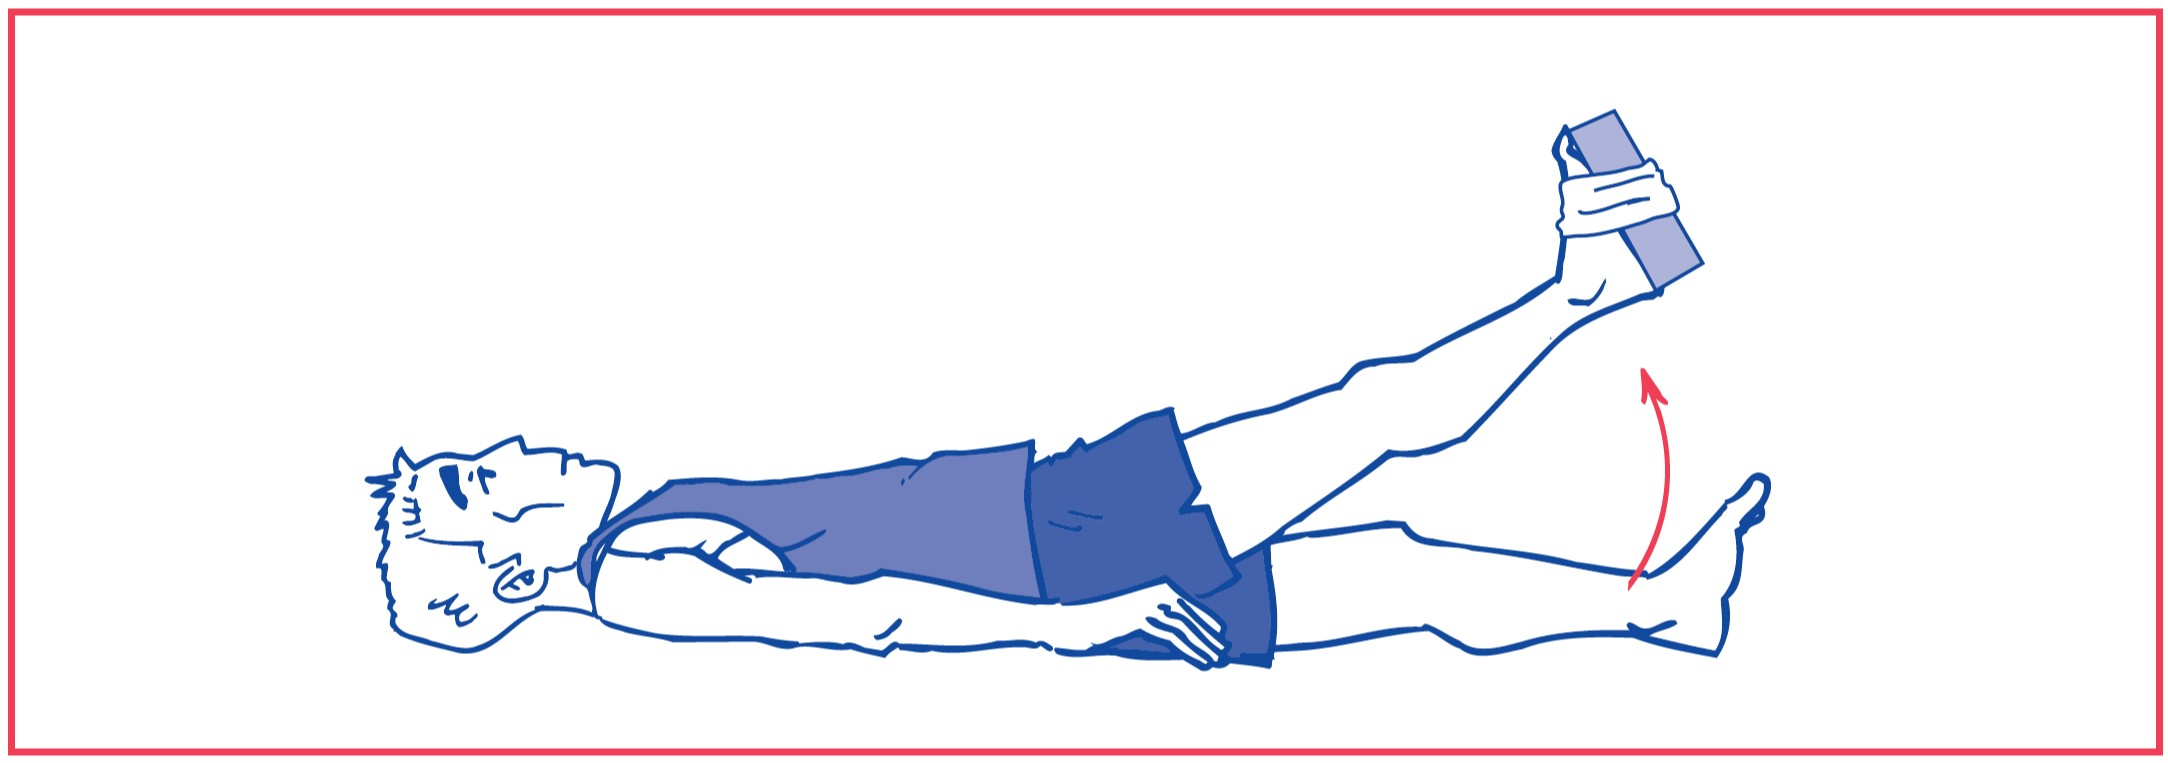 5. Hip flexion against resistance (weights)